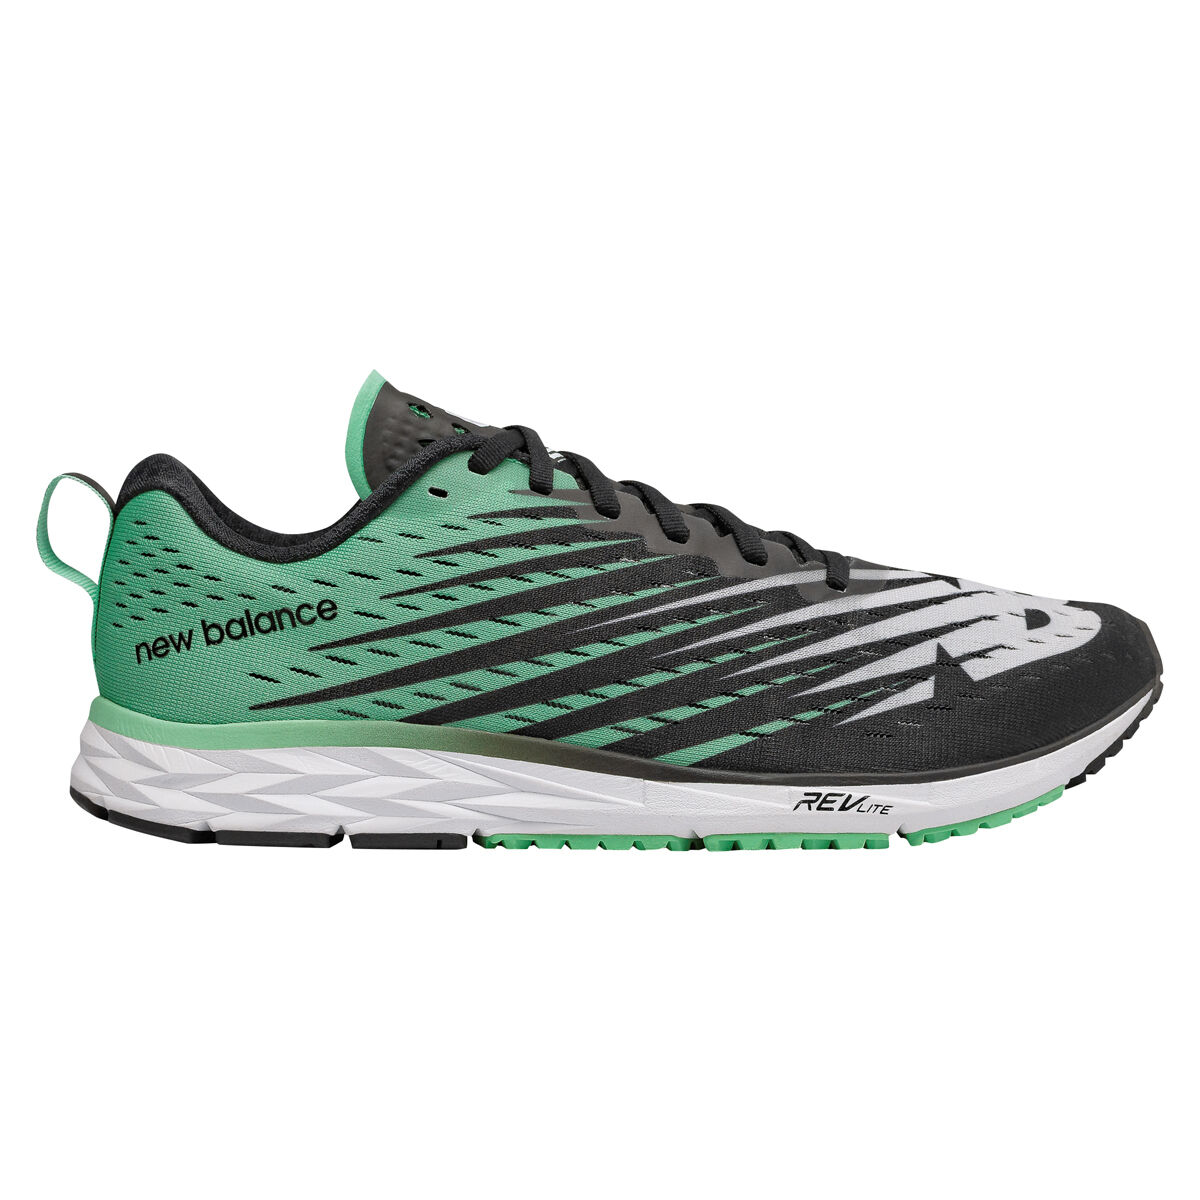 c4525bbbaae ... coupon code for new balance rebel sport f75e5 3c468